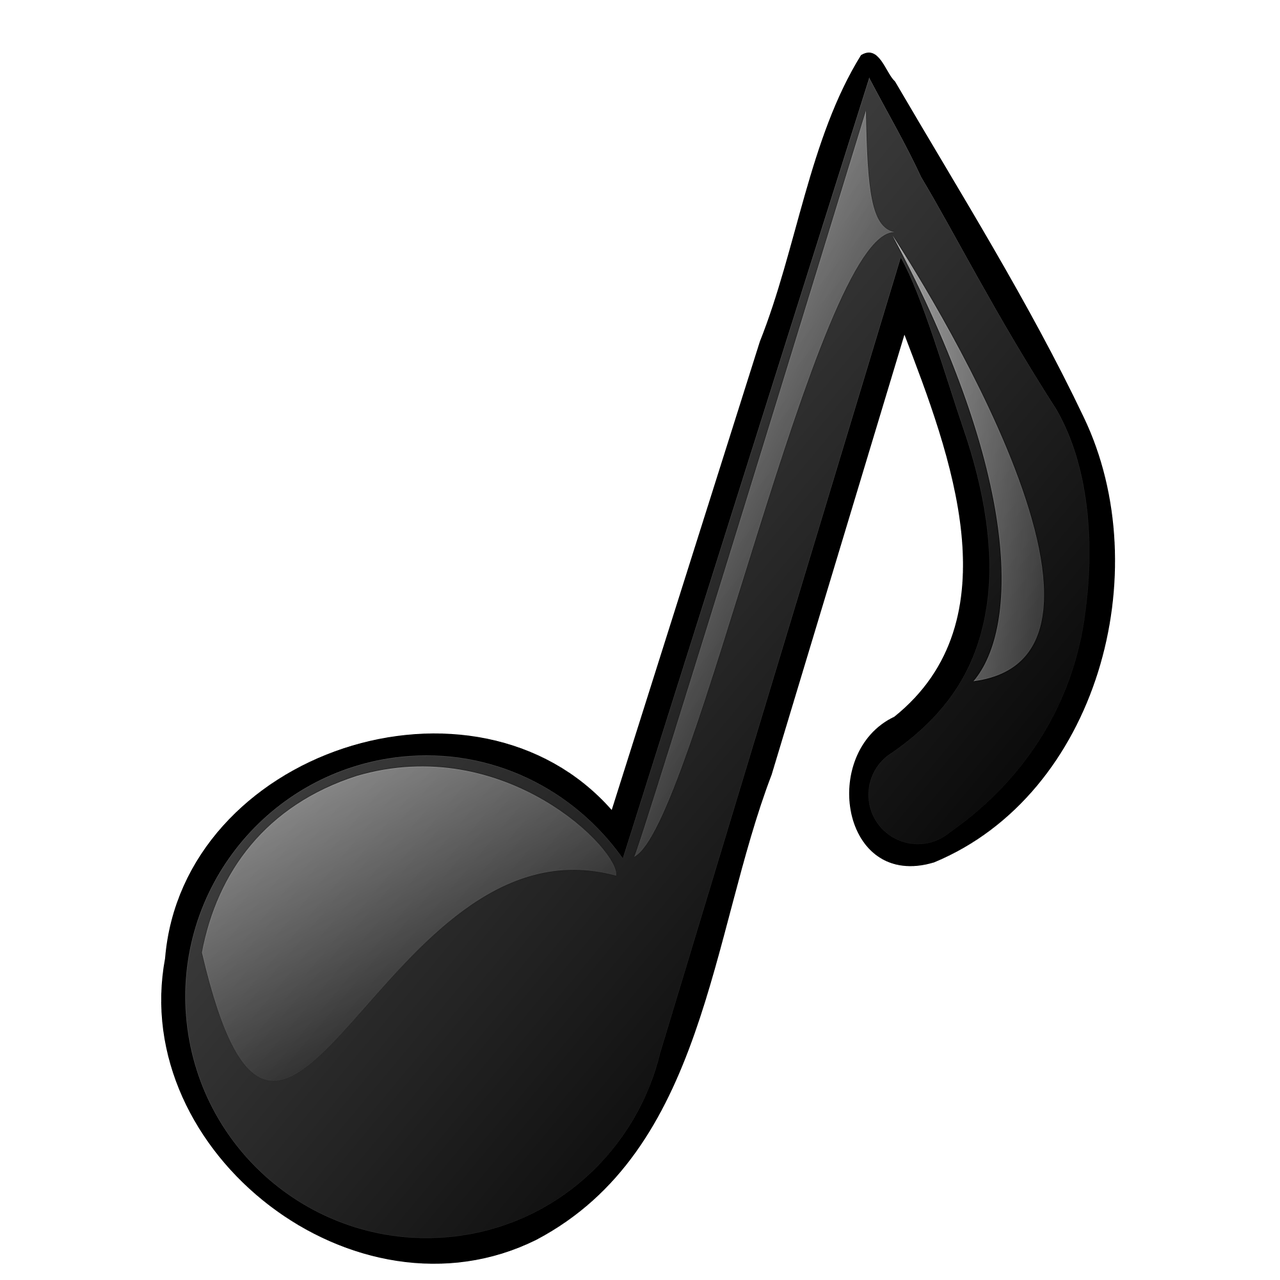 Transparent Musical Notes   Free download on ClipArtMag